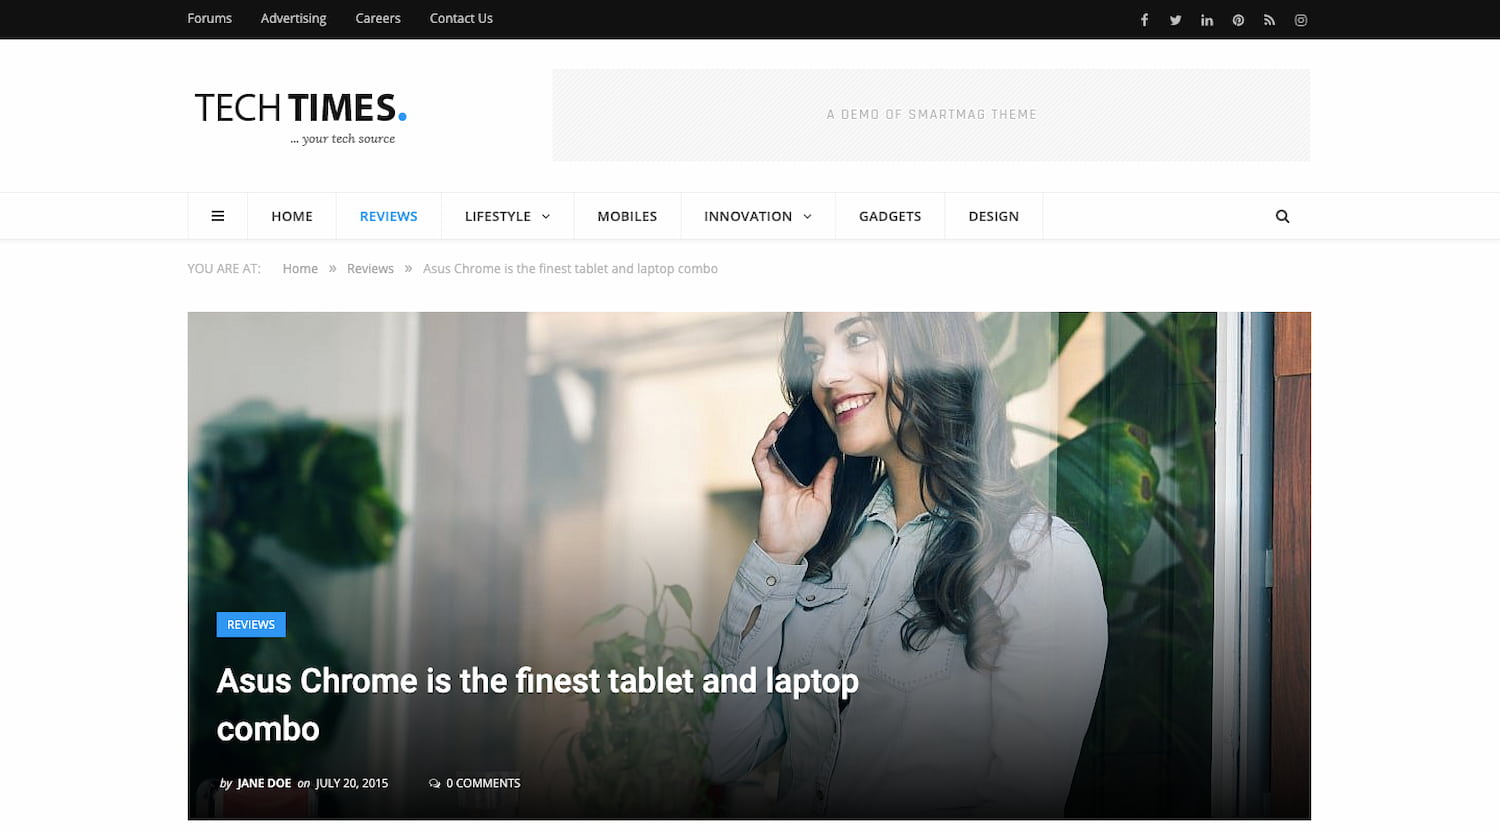 SmartMags Tech Times theme demo includes product reviews